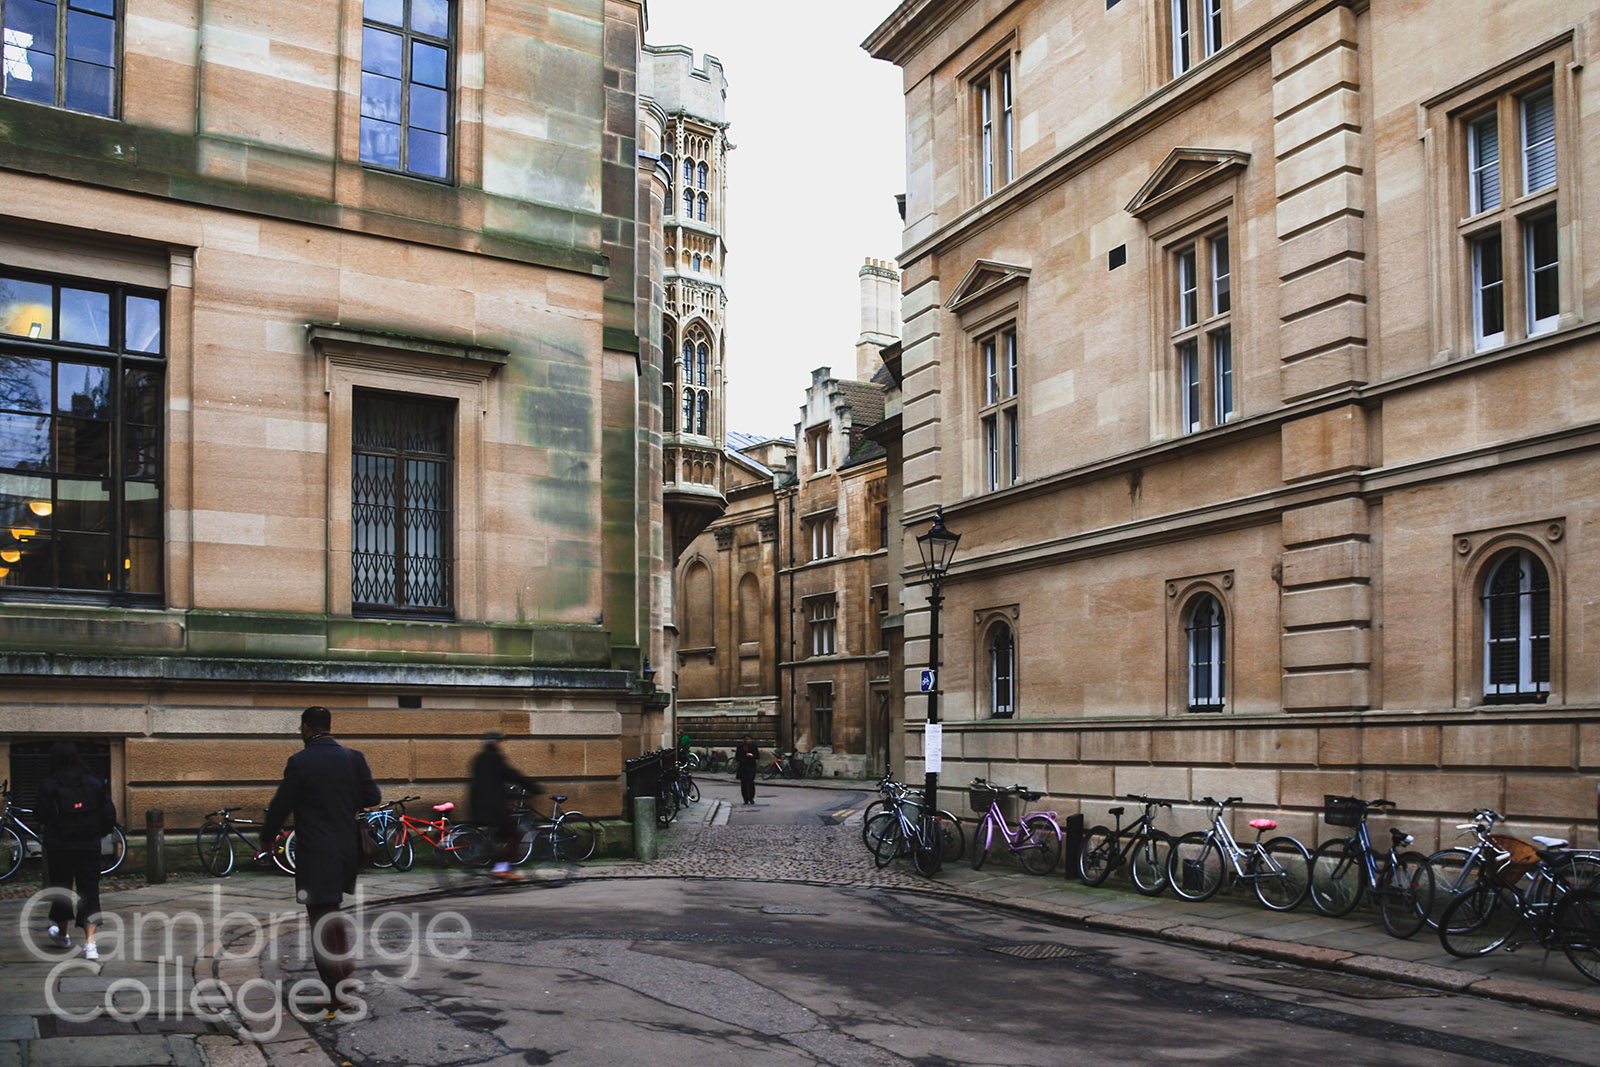 The point where Trinity Hall, Clare and Gonville and Caius Colleges all meet